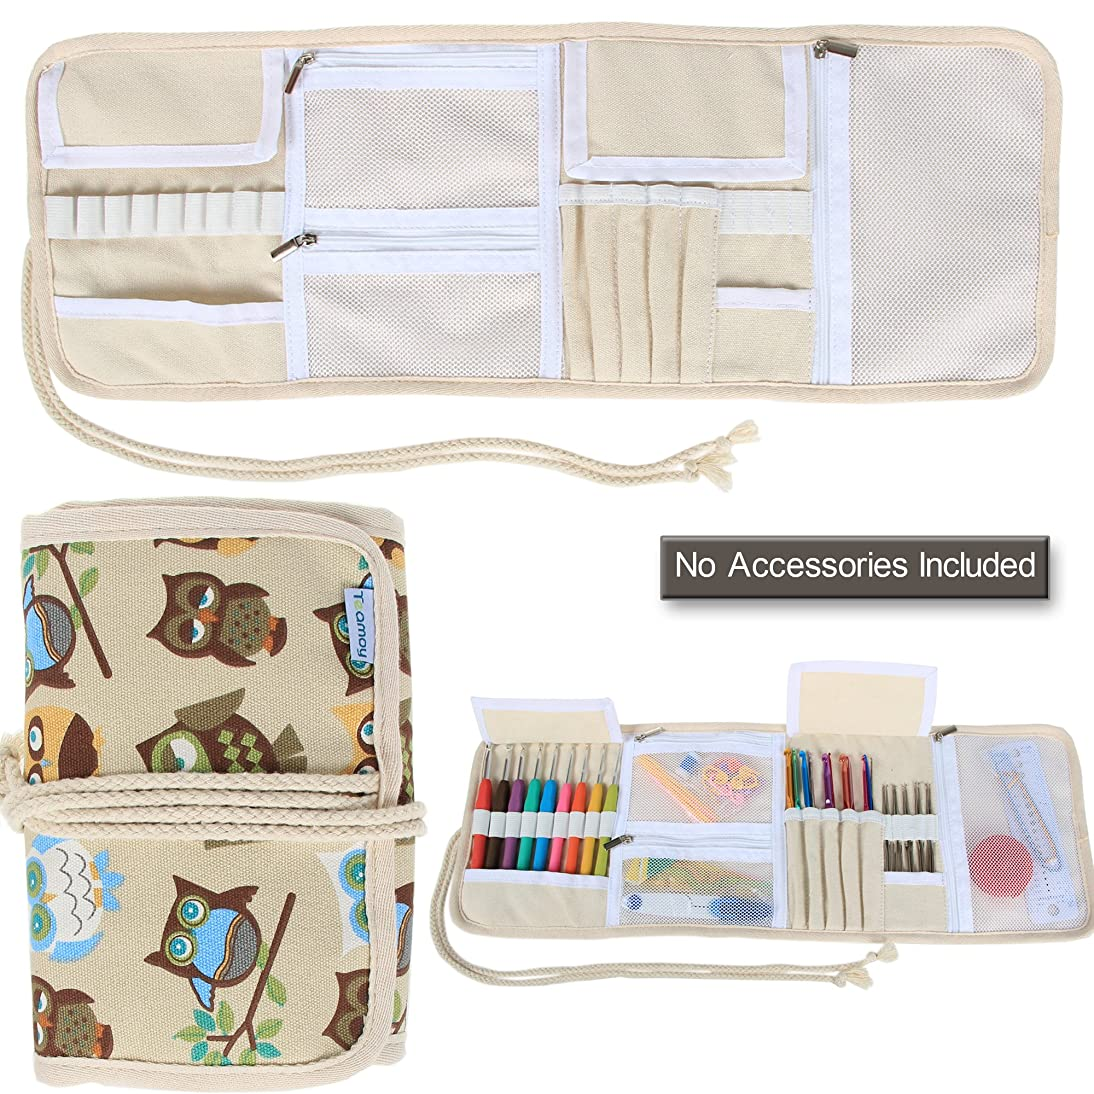 Teamoy Crochet Hook Case, Canvas Roll Bag Holder Organizer for Various Crochet Needles and Knitting Accessories, Coffee Owls